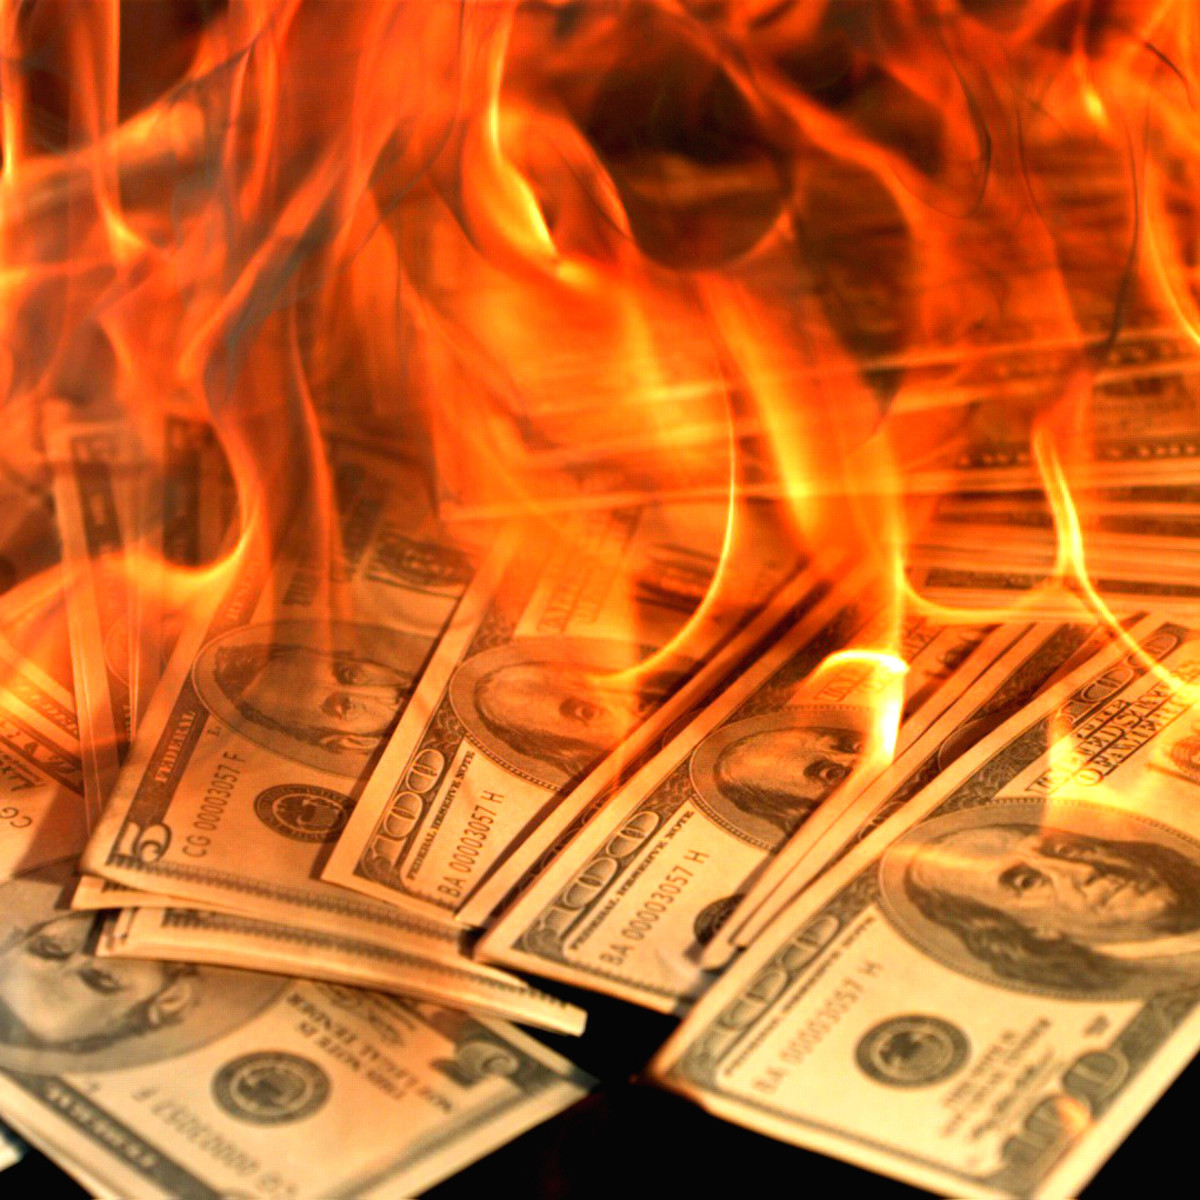 burning money 100 hundred dollar bills